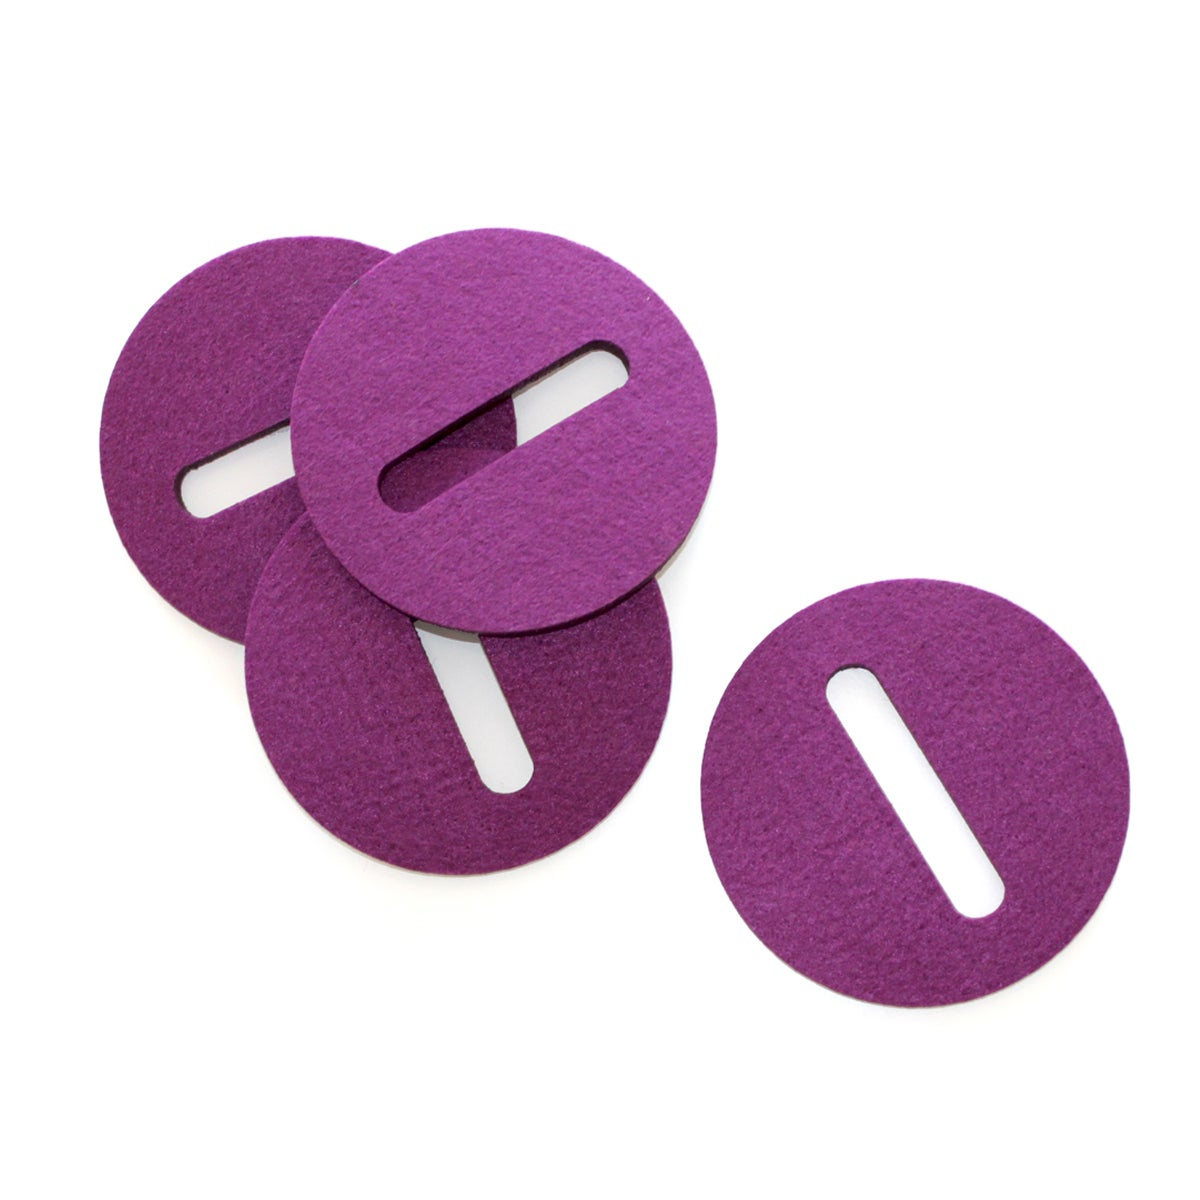 Image of Cupa-Stay Coasters Purple